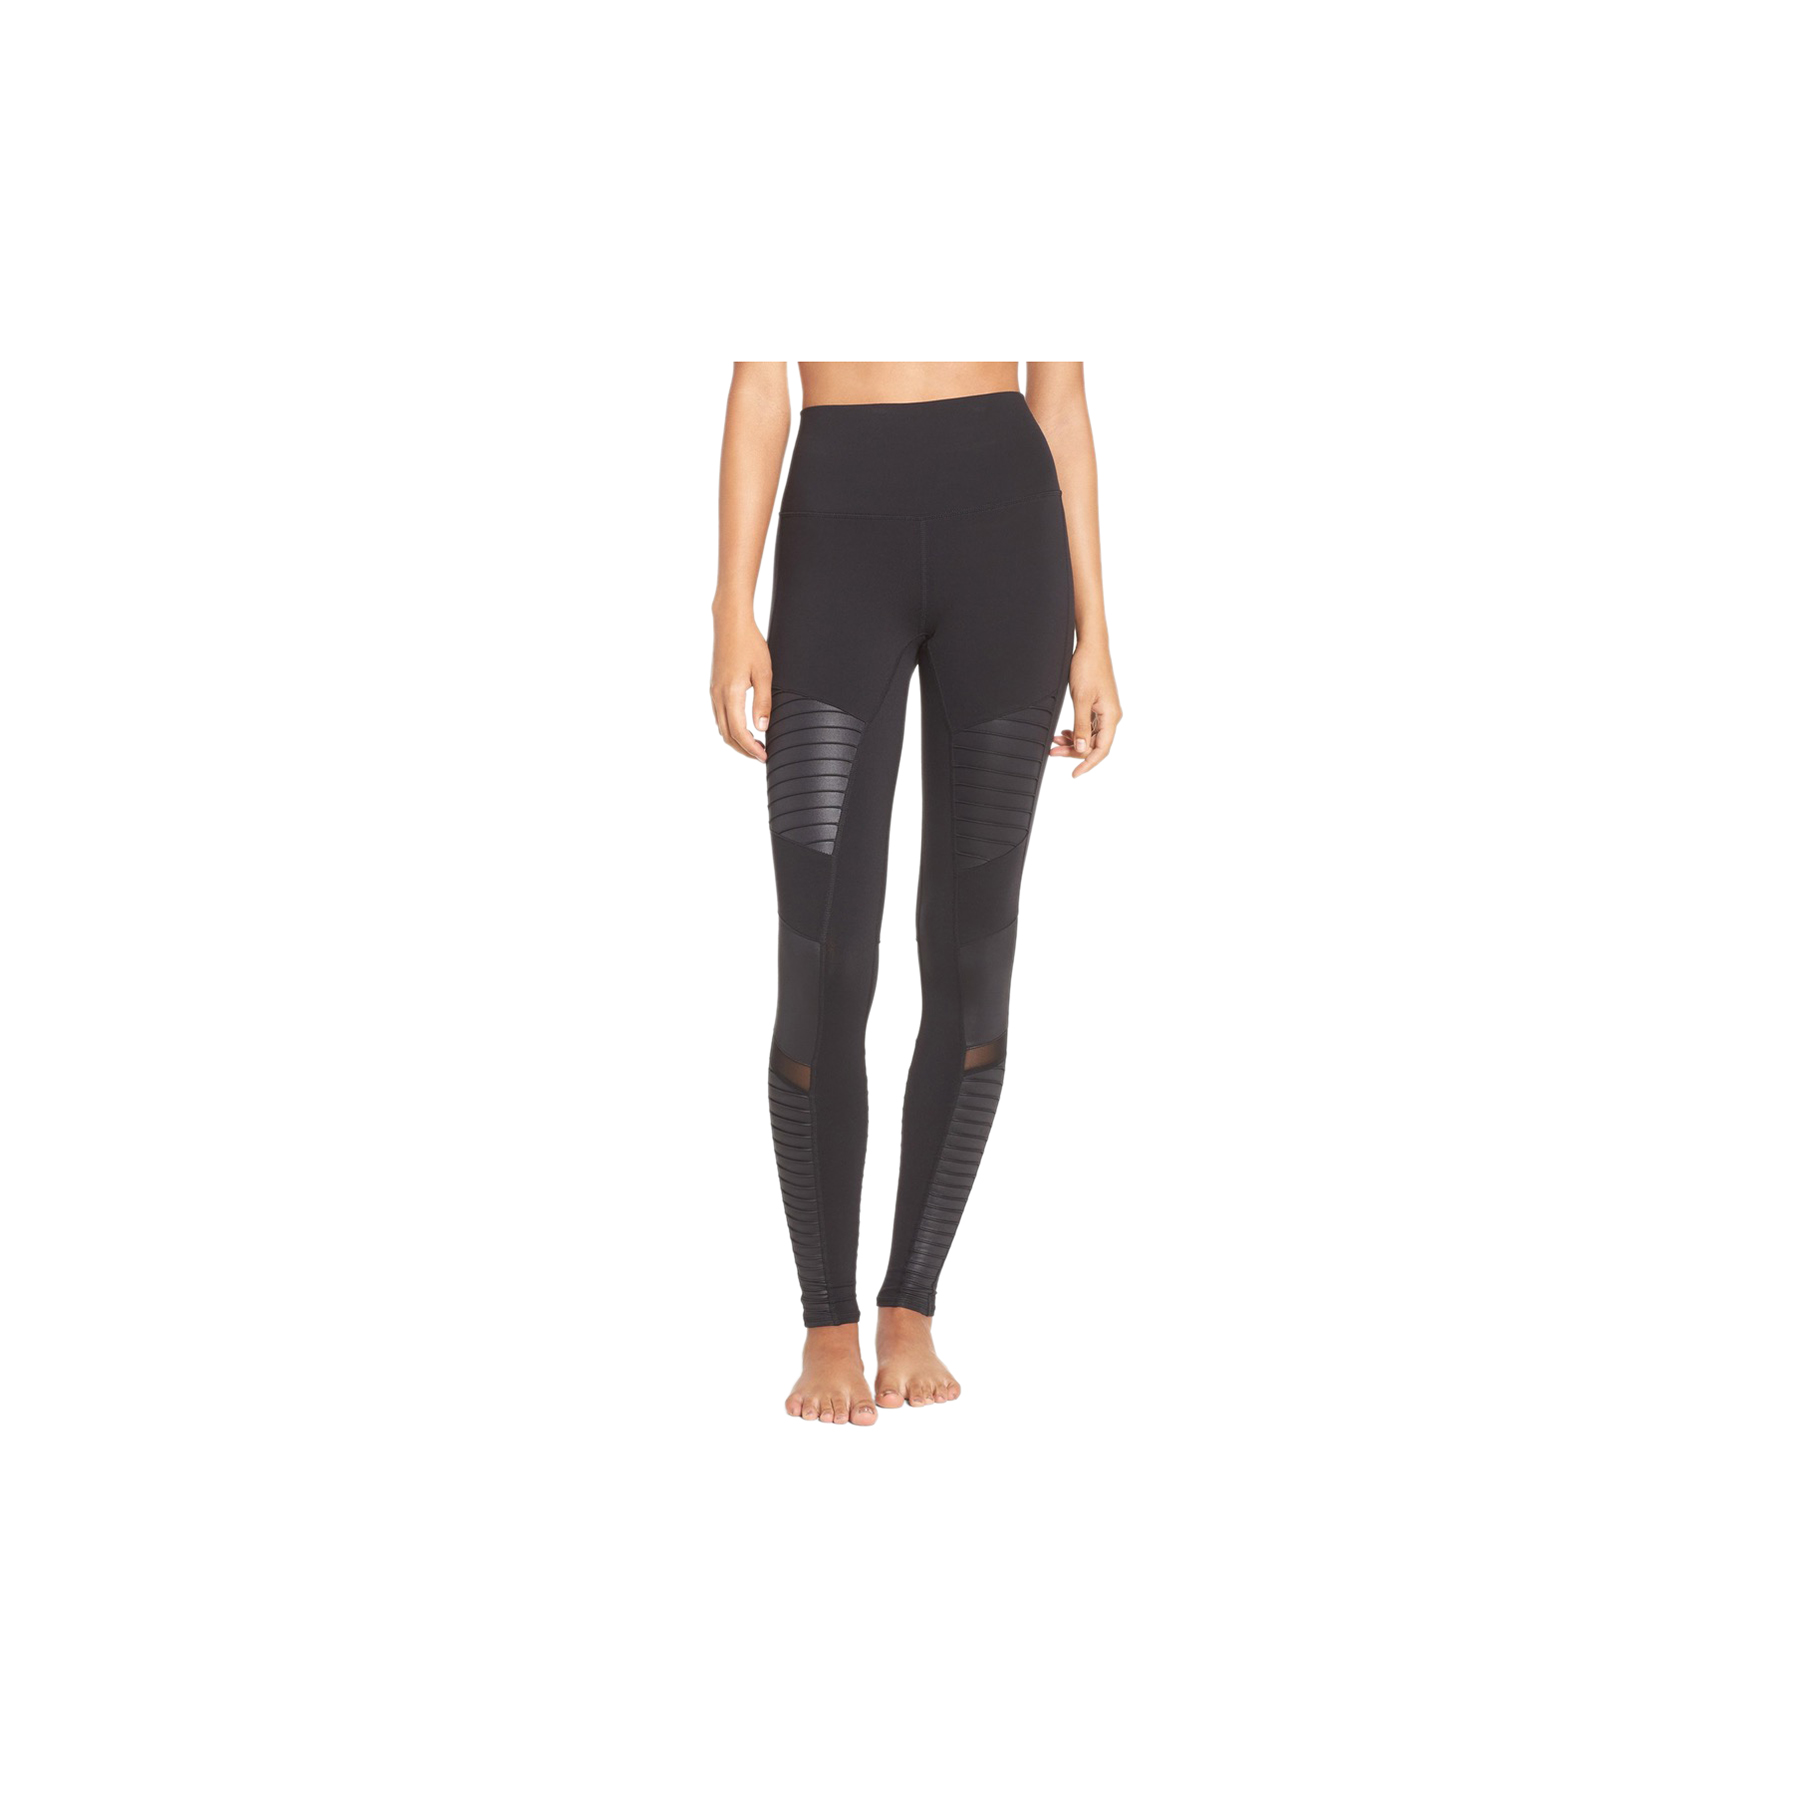 8cfc44da0299c6 7 Black Leggings That Are Perfect for Traveling | Real Simple